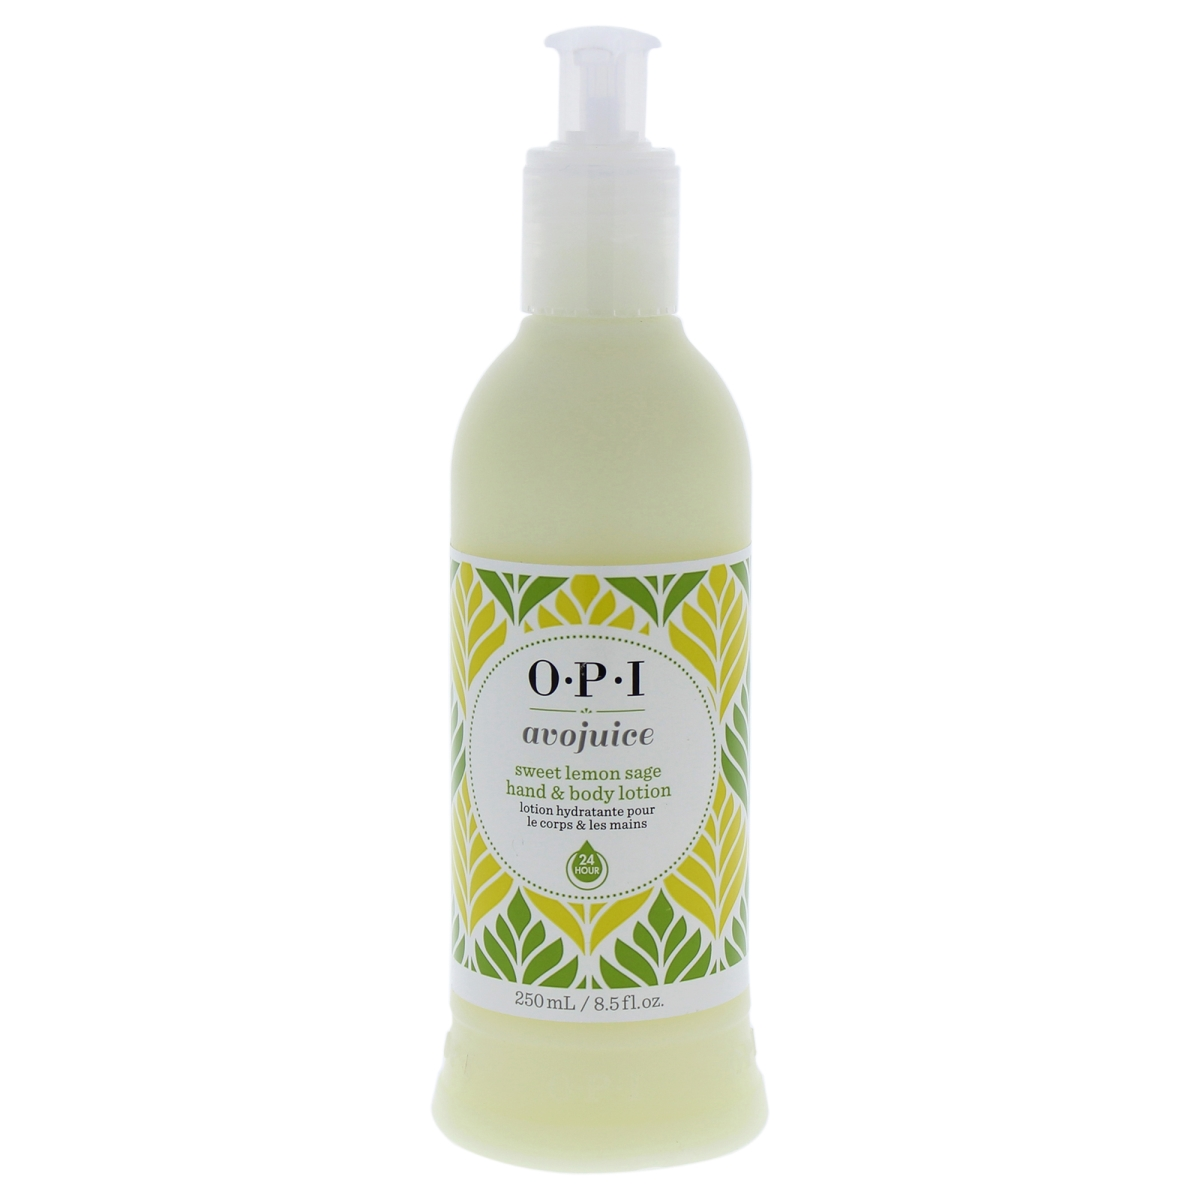 OPI W-BB-3238 Avojuice Sweet 8.5 oz Lemon Sage Hand & Body Lotion for Women